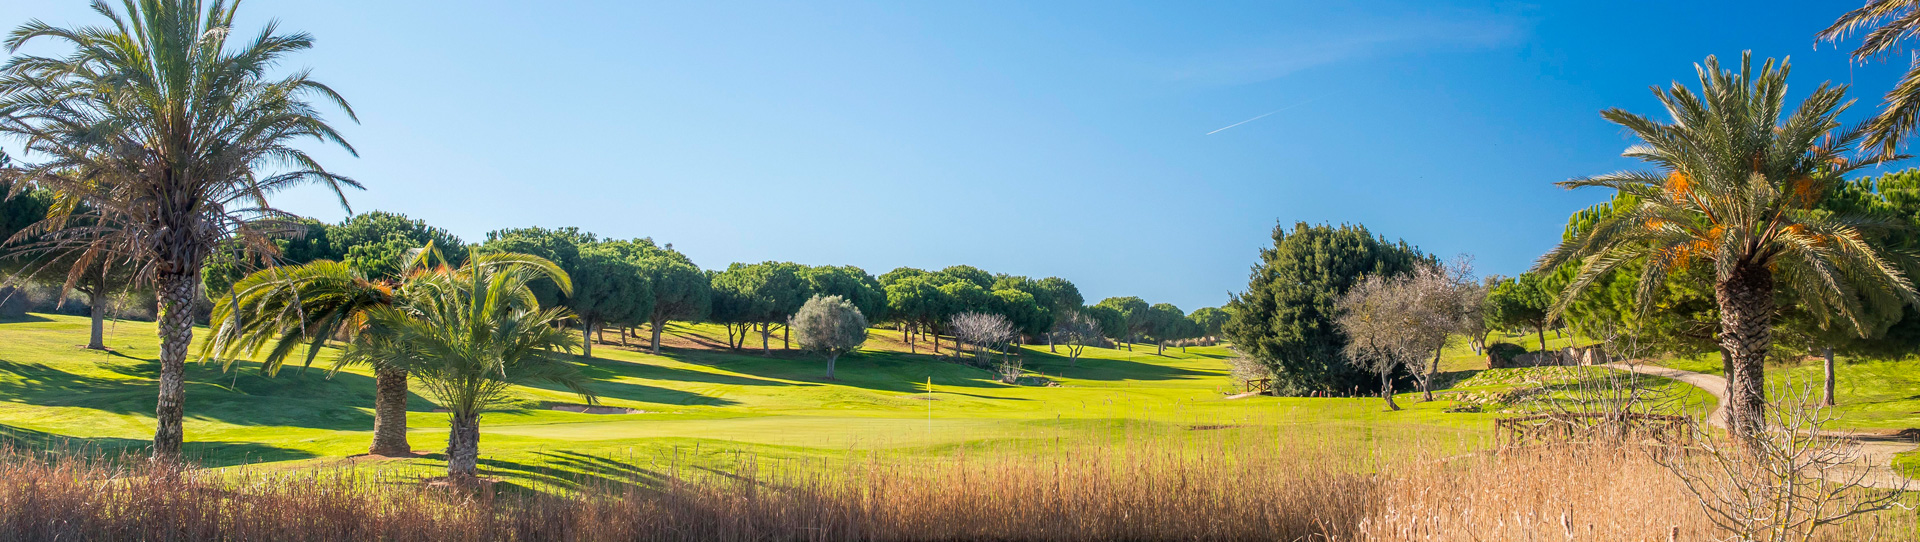 Boavista Golf Course - Photo 3